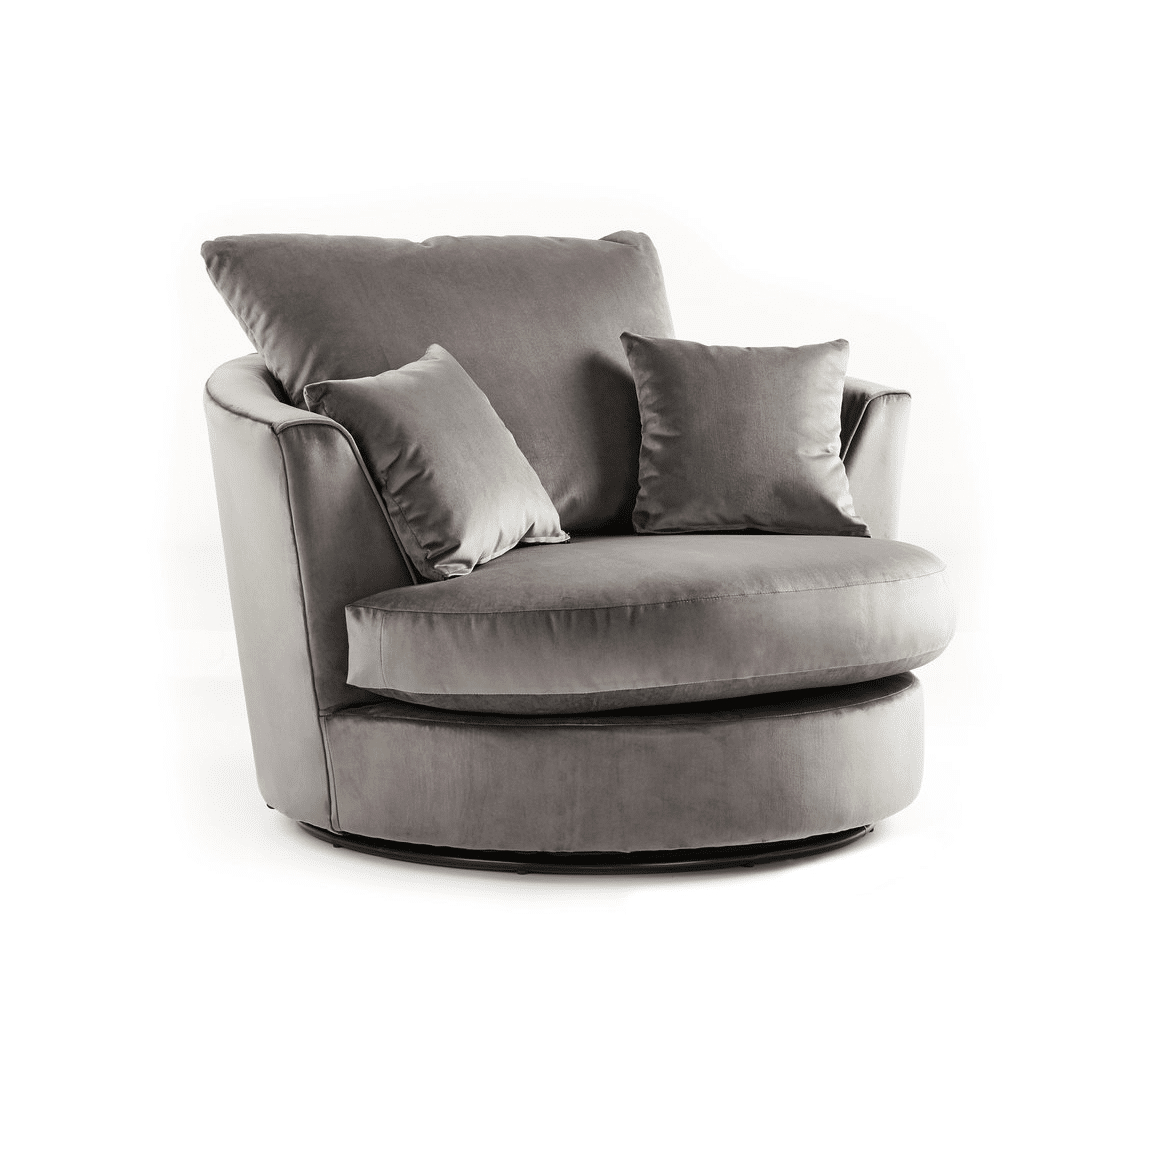 Crushed Velvet Furniture | Sofas, Beds, Chairs, Cushions Regarding Charcoal Swivel Chairs (Image 10 of 20)